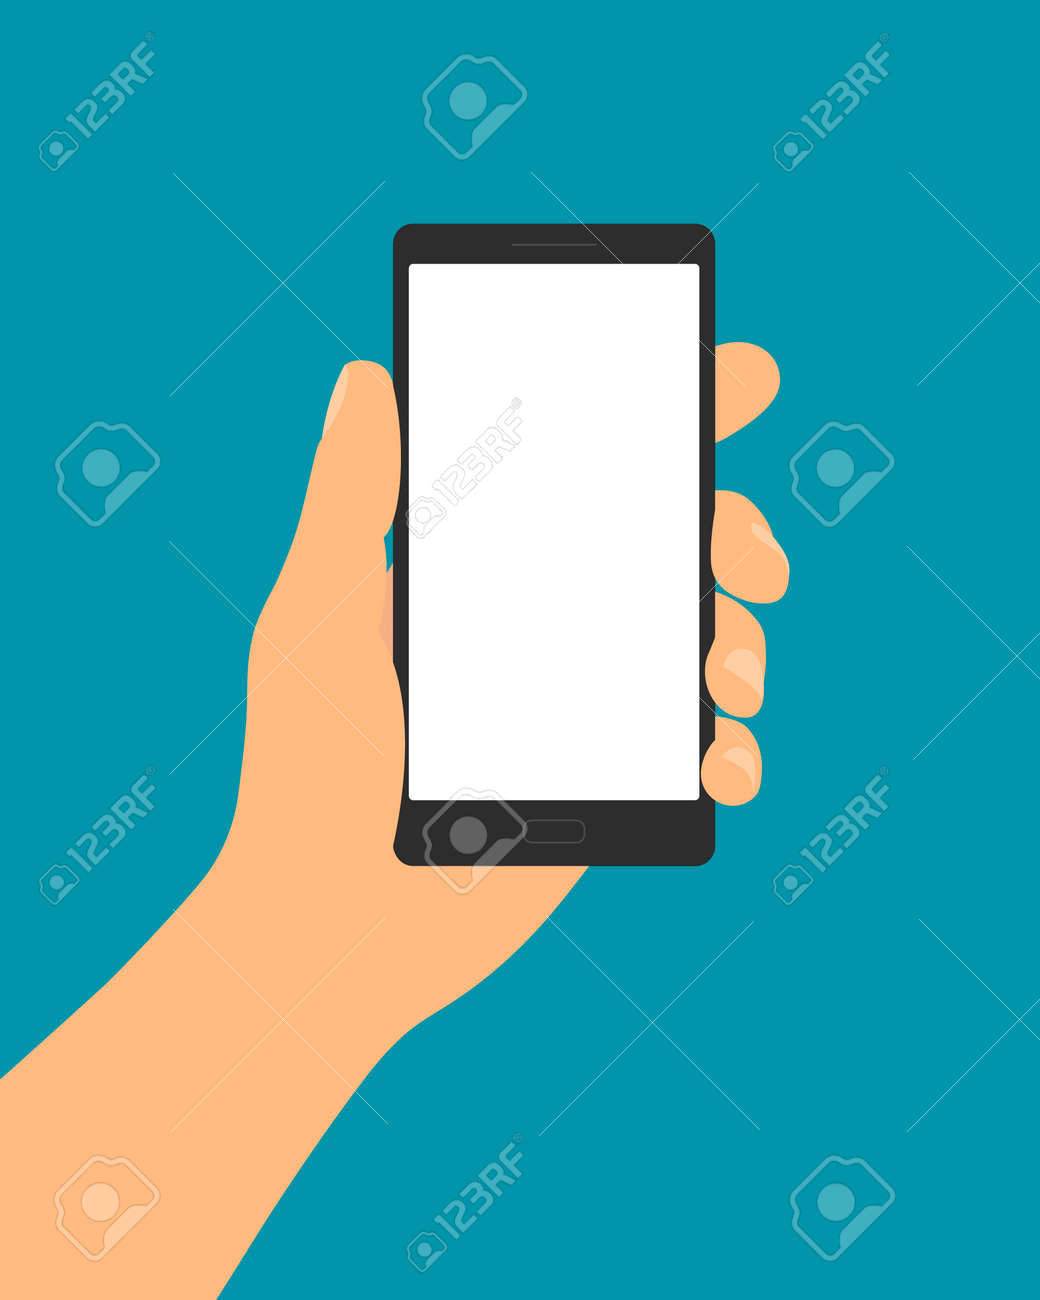 Flat design illustration of male hand holding in fingers mobile phone with blank white touch screen and space for your text.Isolated on green background - vector - 166247456